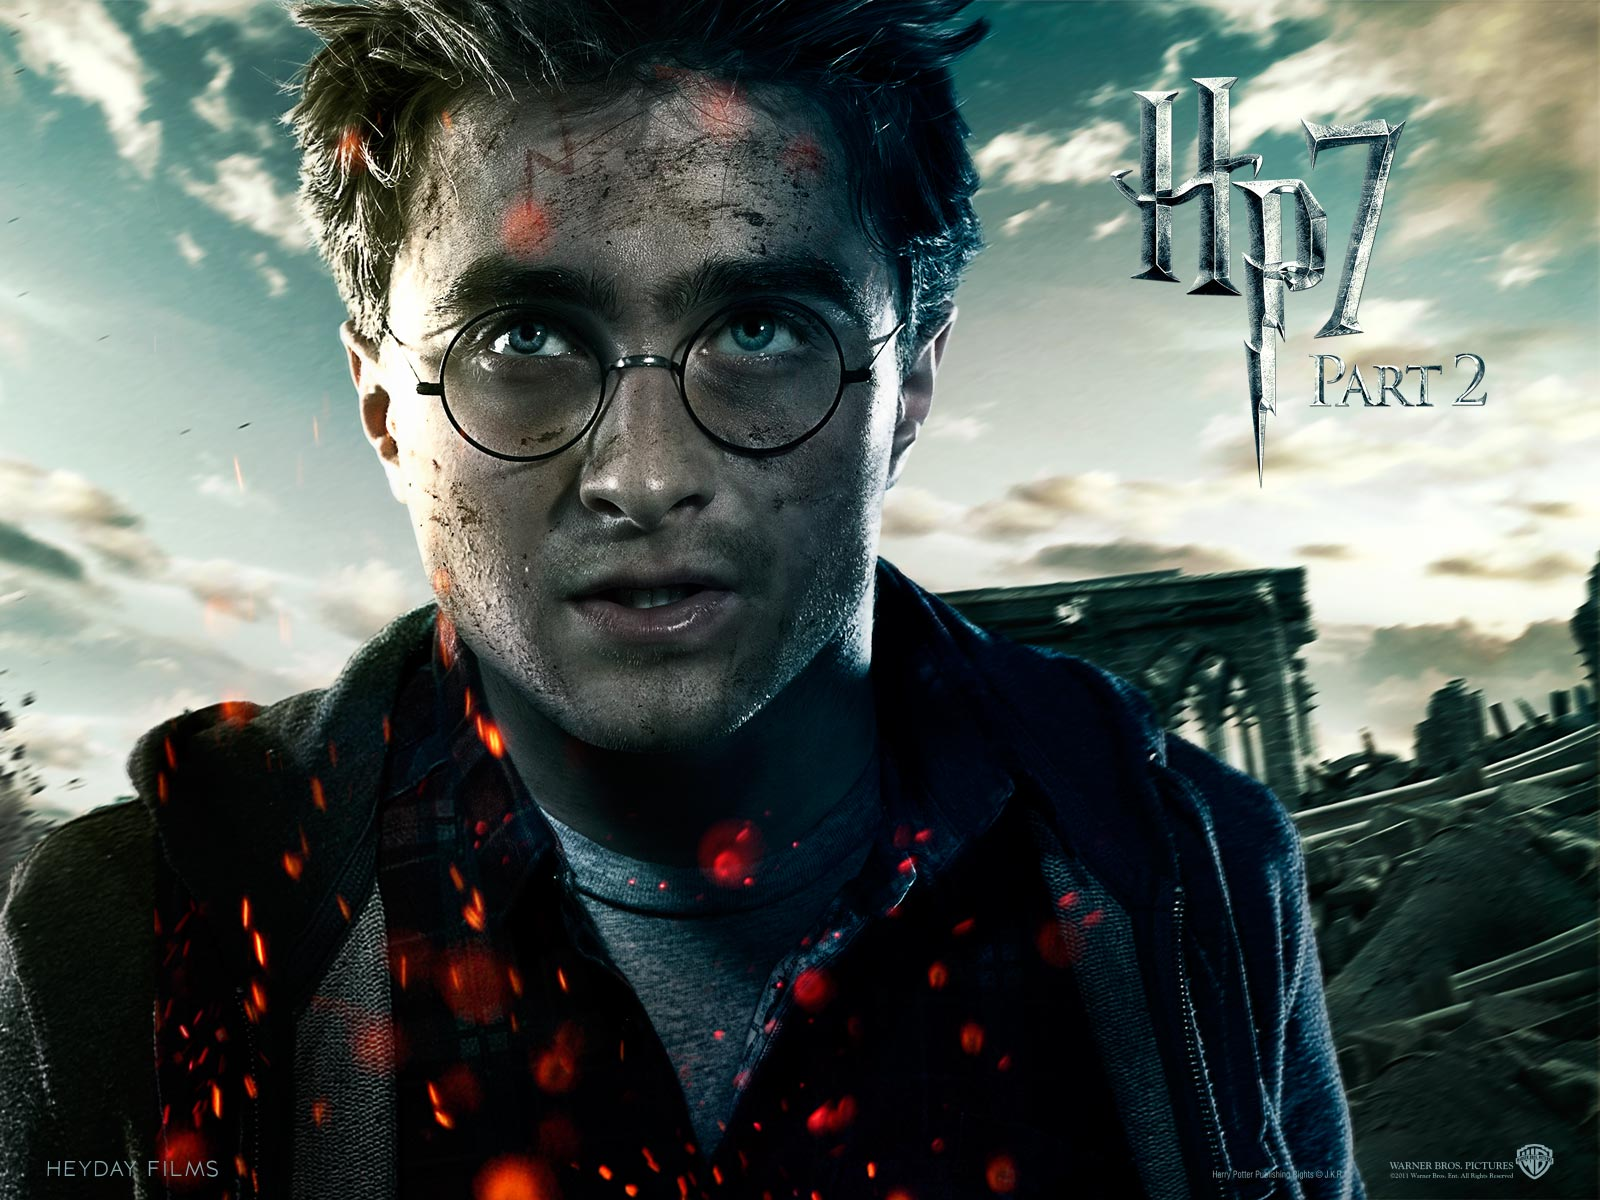 Deathly Hallows Part Ii Official Wallpapers - Daniel Radcliffe Harry Potter And The Deathly Hallows - HD Wallpaper